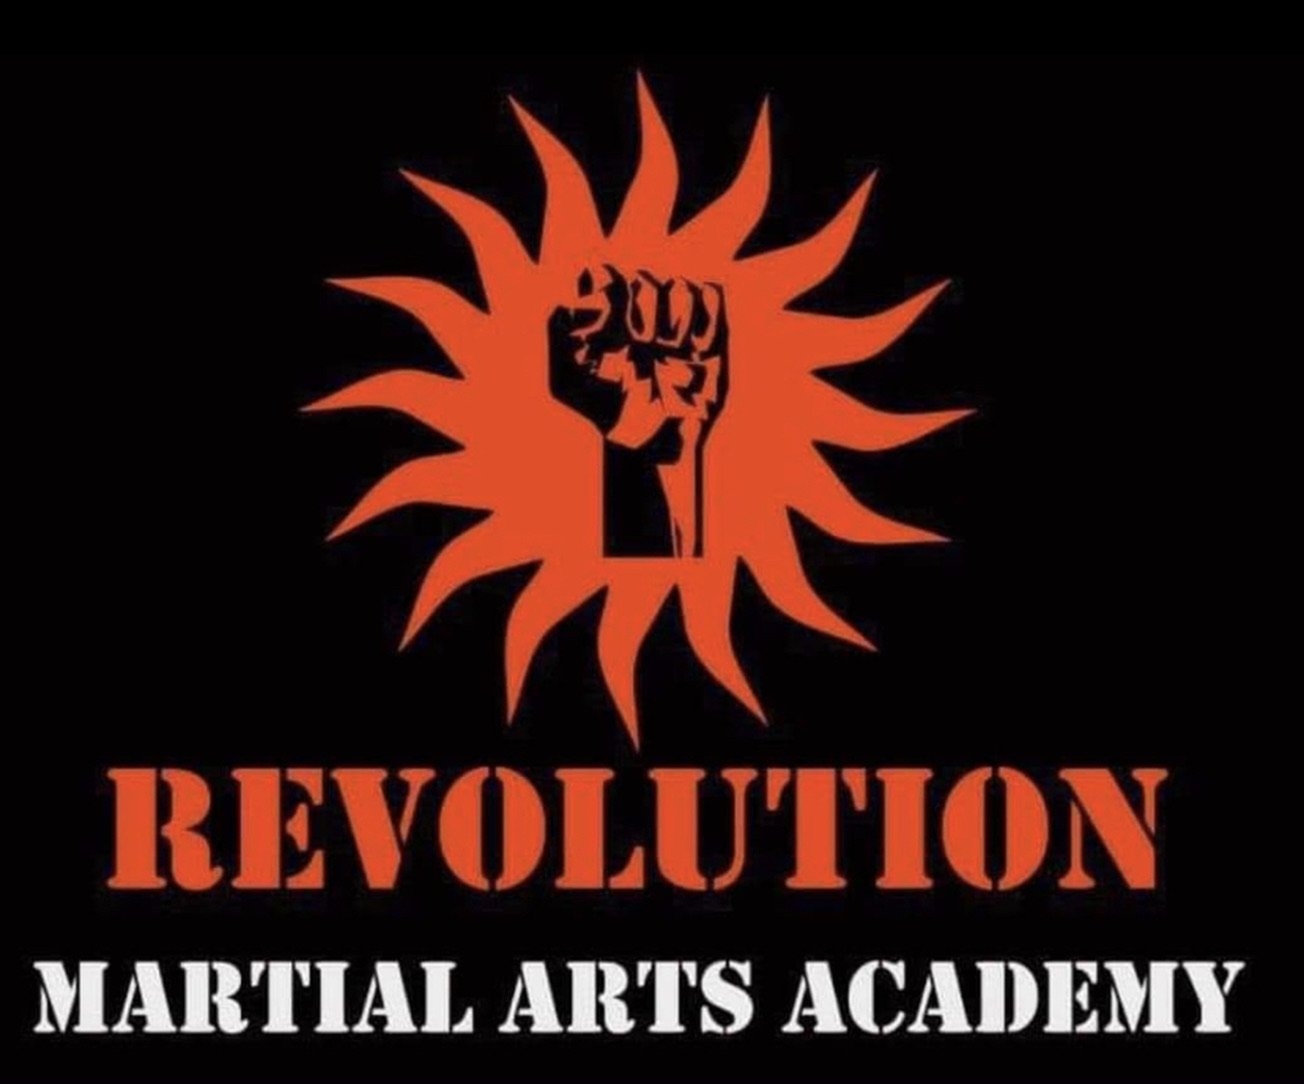 Revolution Martial Arts Academy Members Website - Martial Arts Classes in Dewsbury